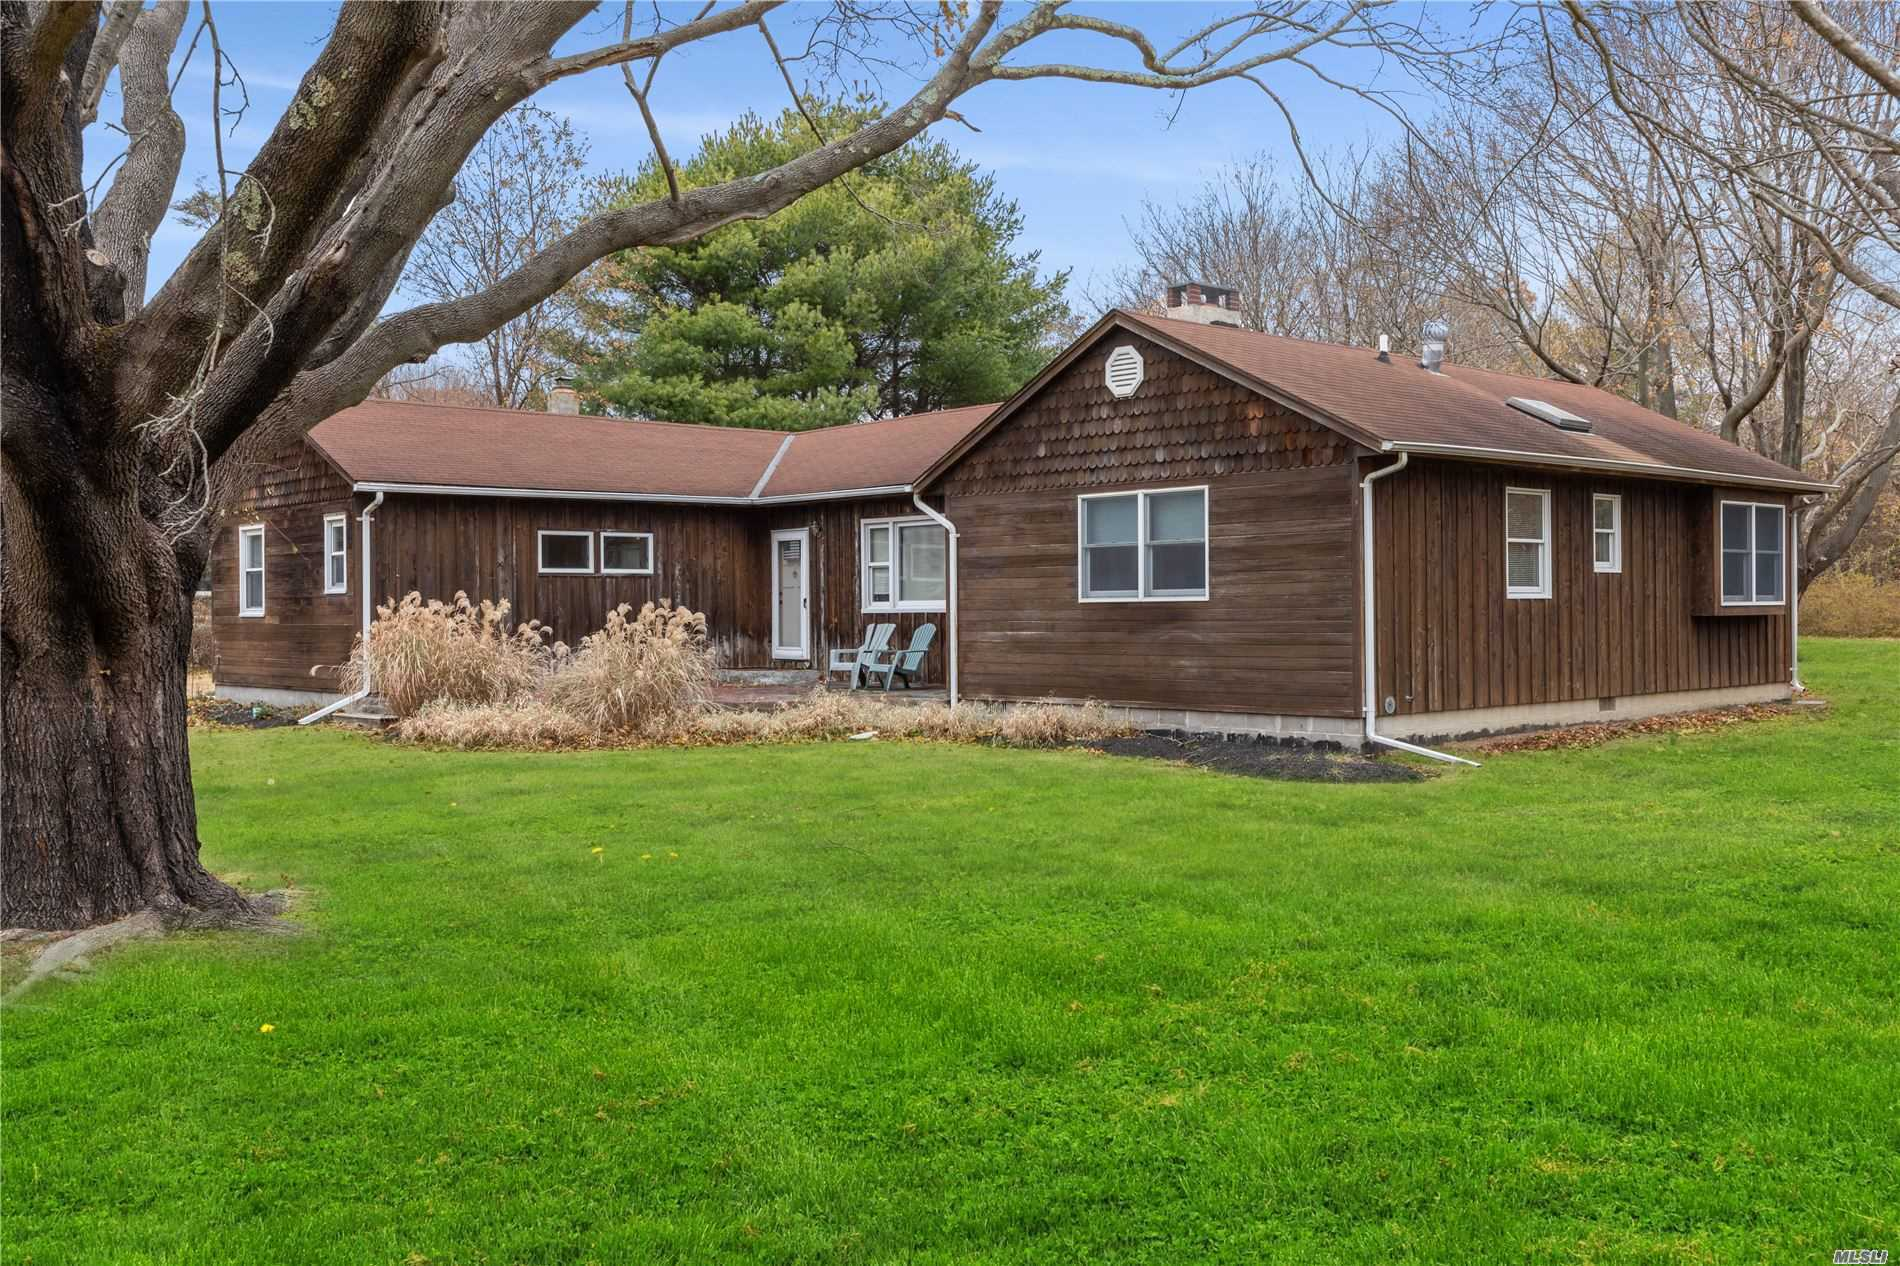 2405 Marratooka Rd - Mattituck, New York